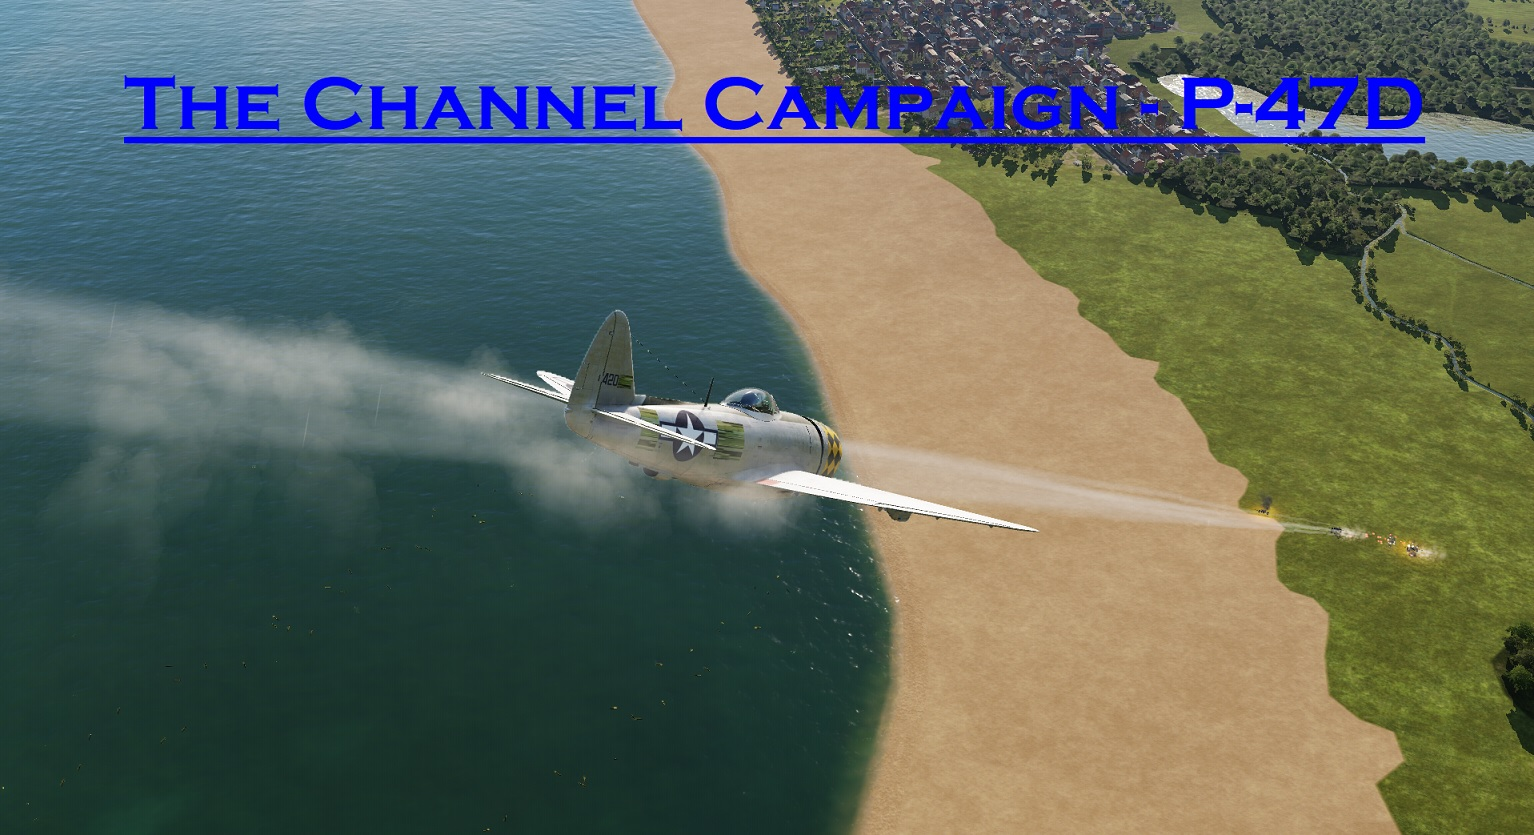 WWII The Channel P-47D using Mbot Dynamic Campaign Engine